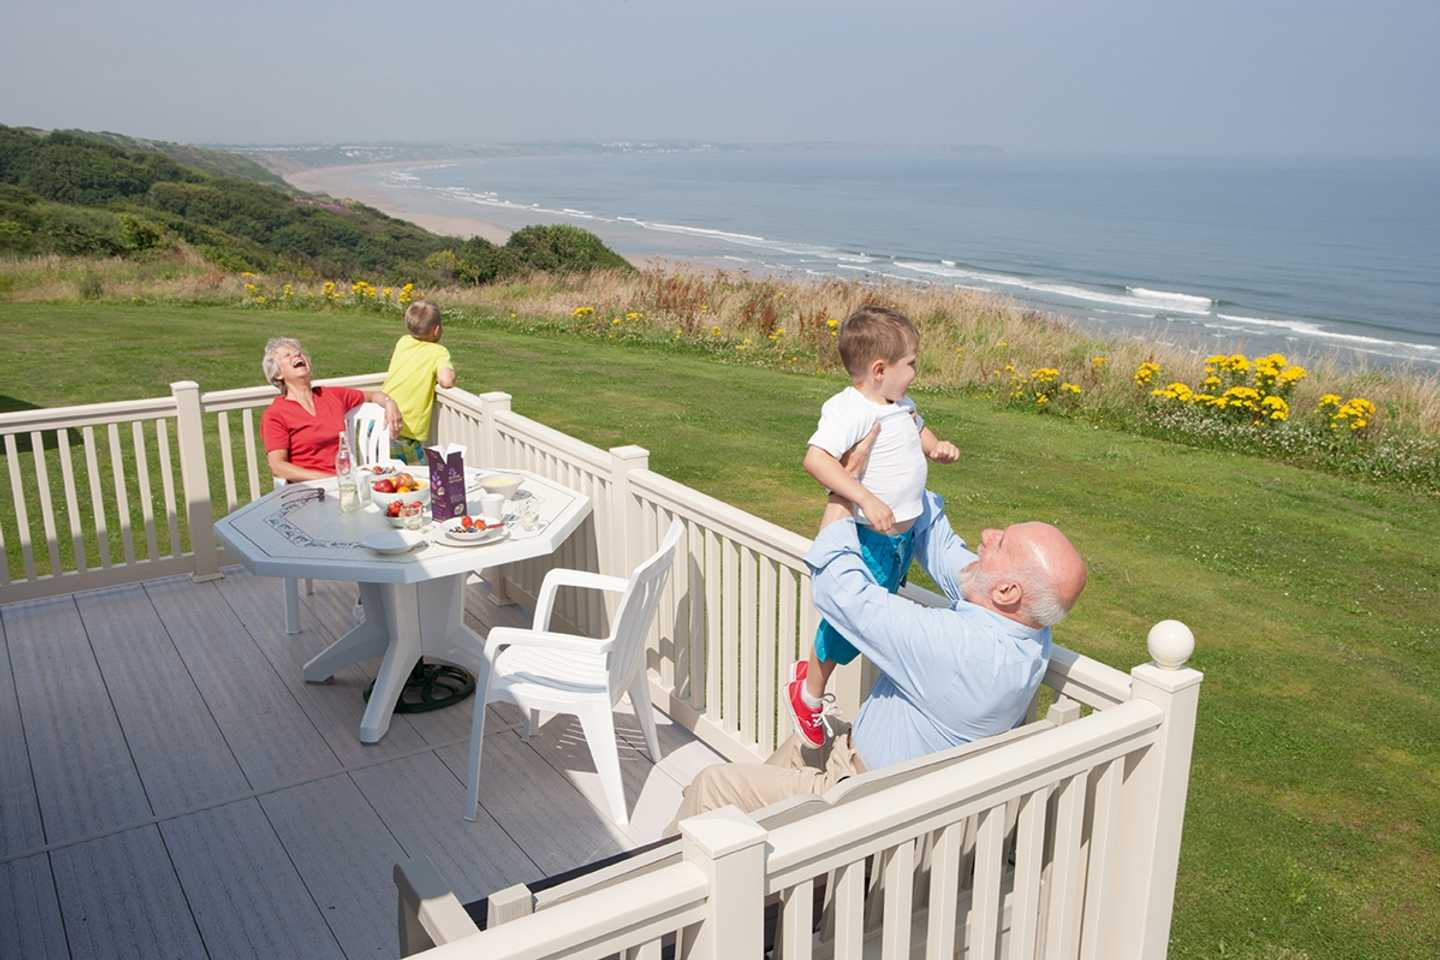 Owners on the veranda of their holiday home at Reighton Sands